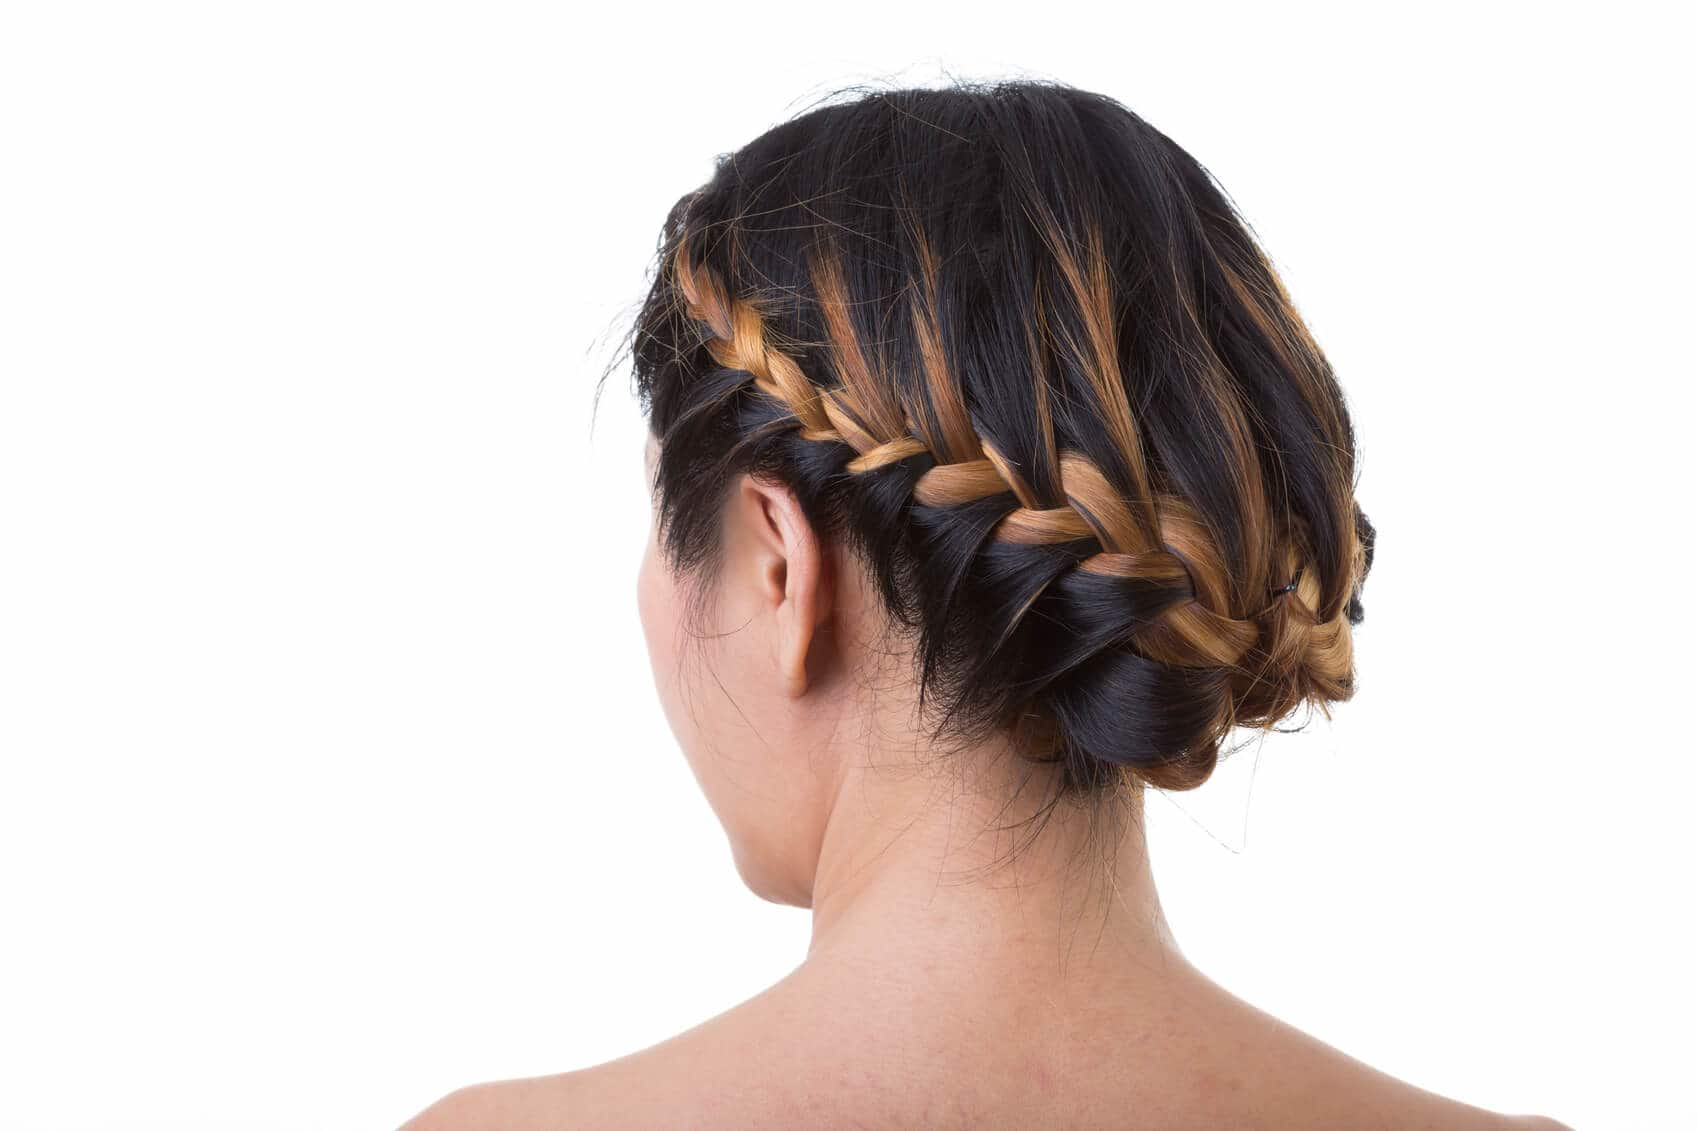 brown hair with blonde highlights in an updo